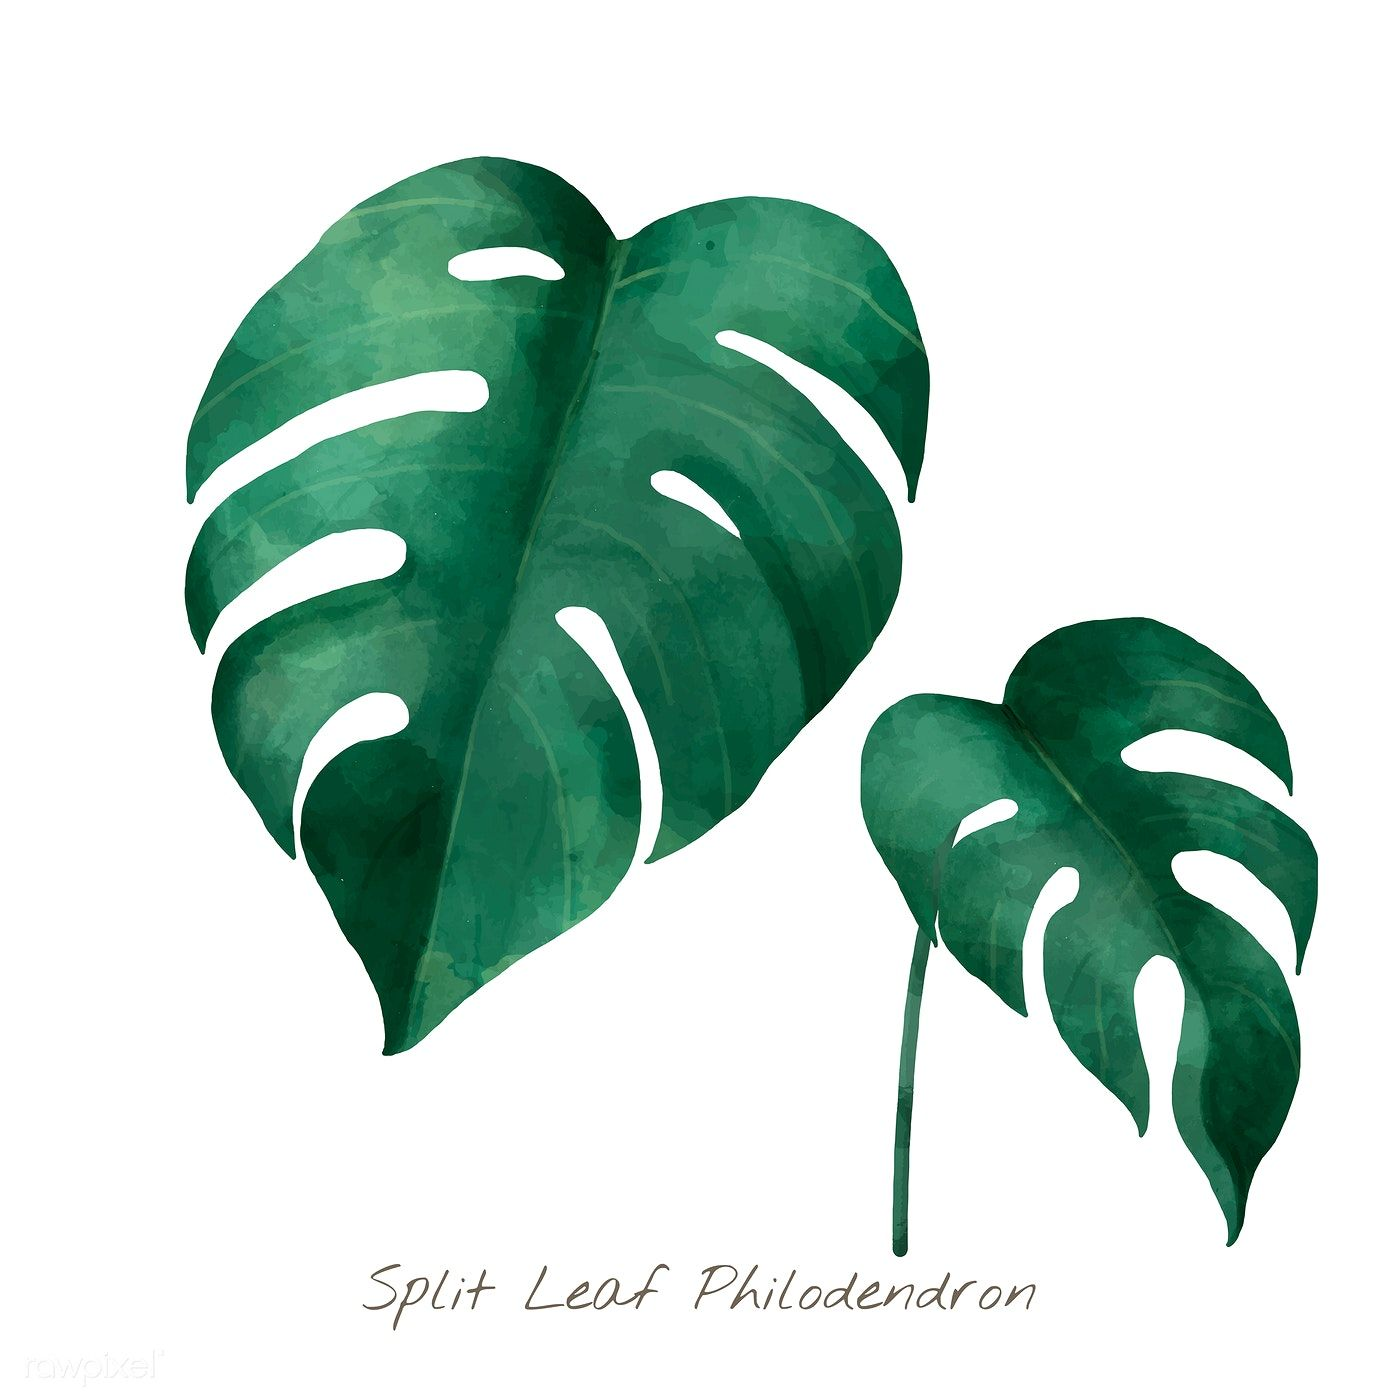 Download Premium Vector Of Split Leaf Philodendron Isolated On